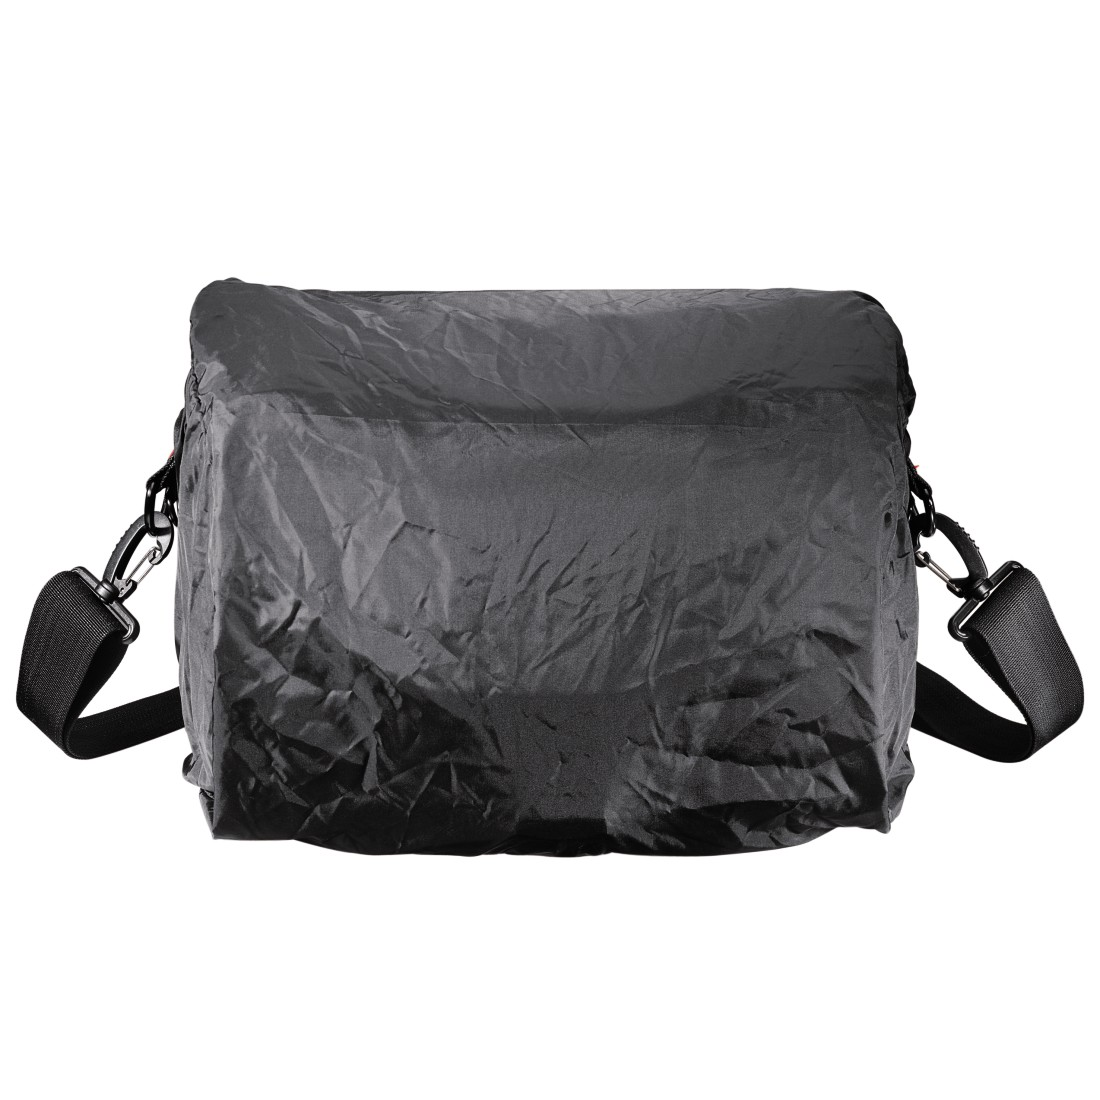 dex2 High-Res Detail 2 - Hama, Protour Camera Bag, 200, black